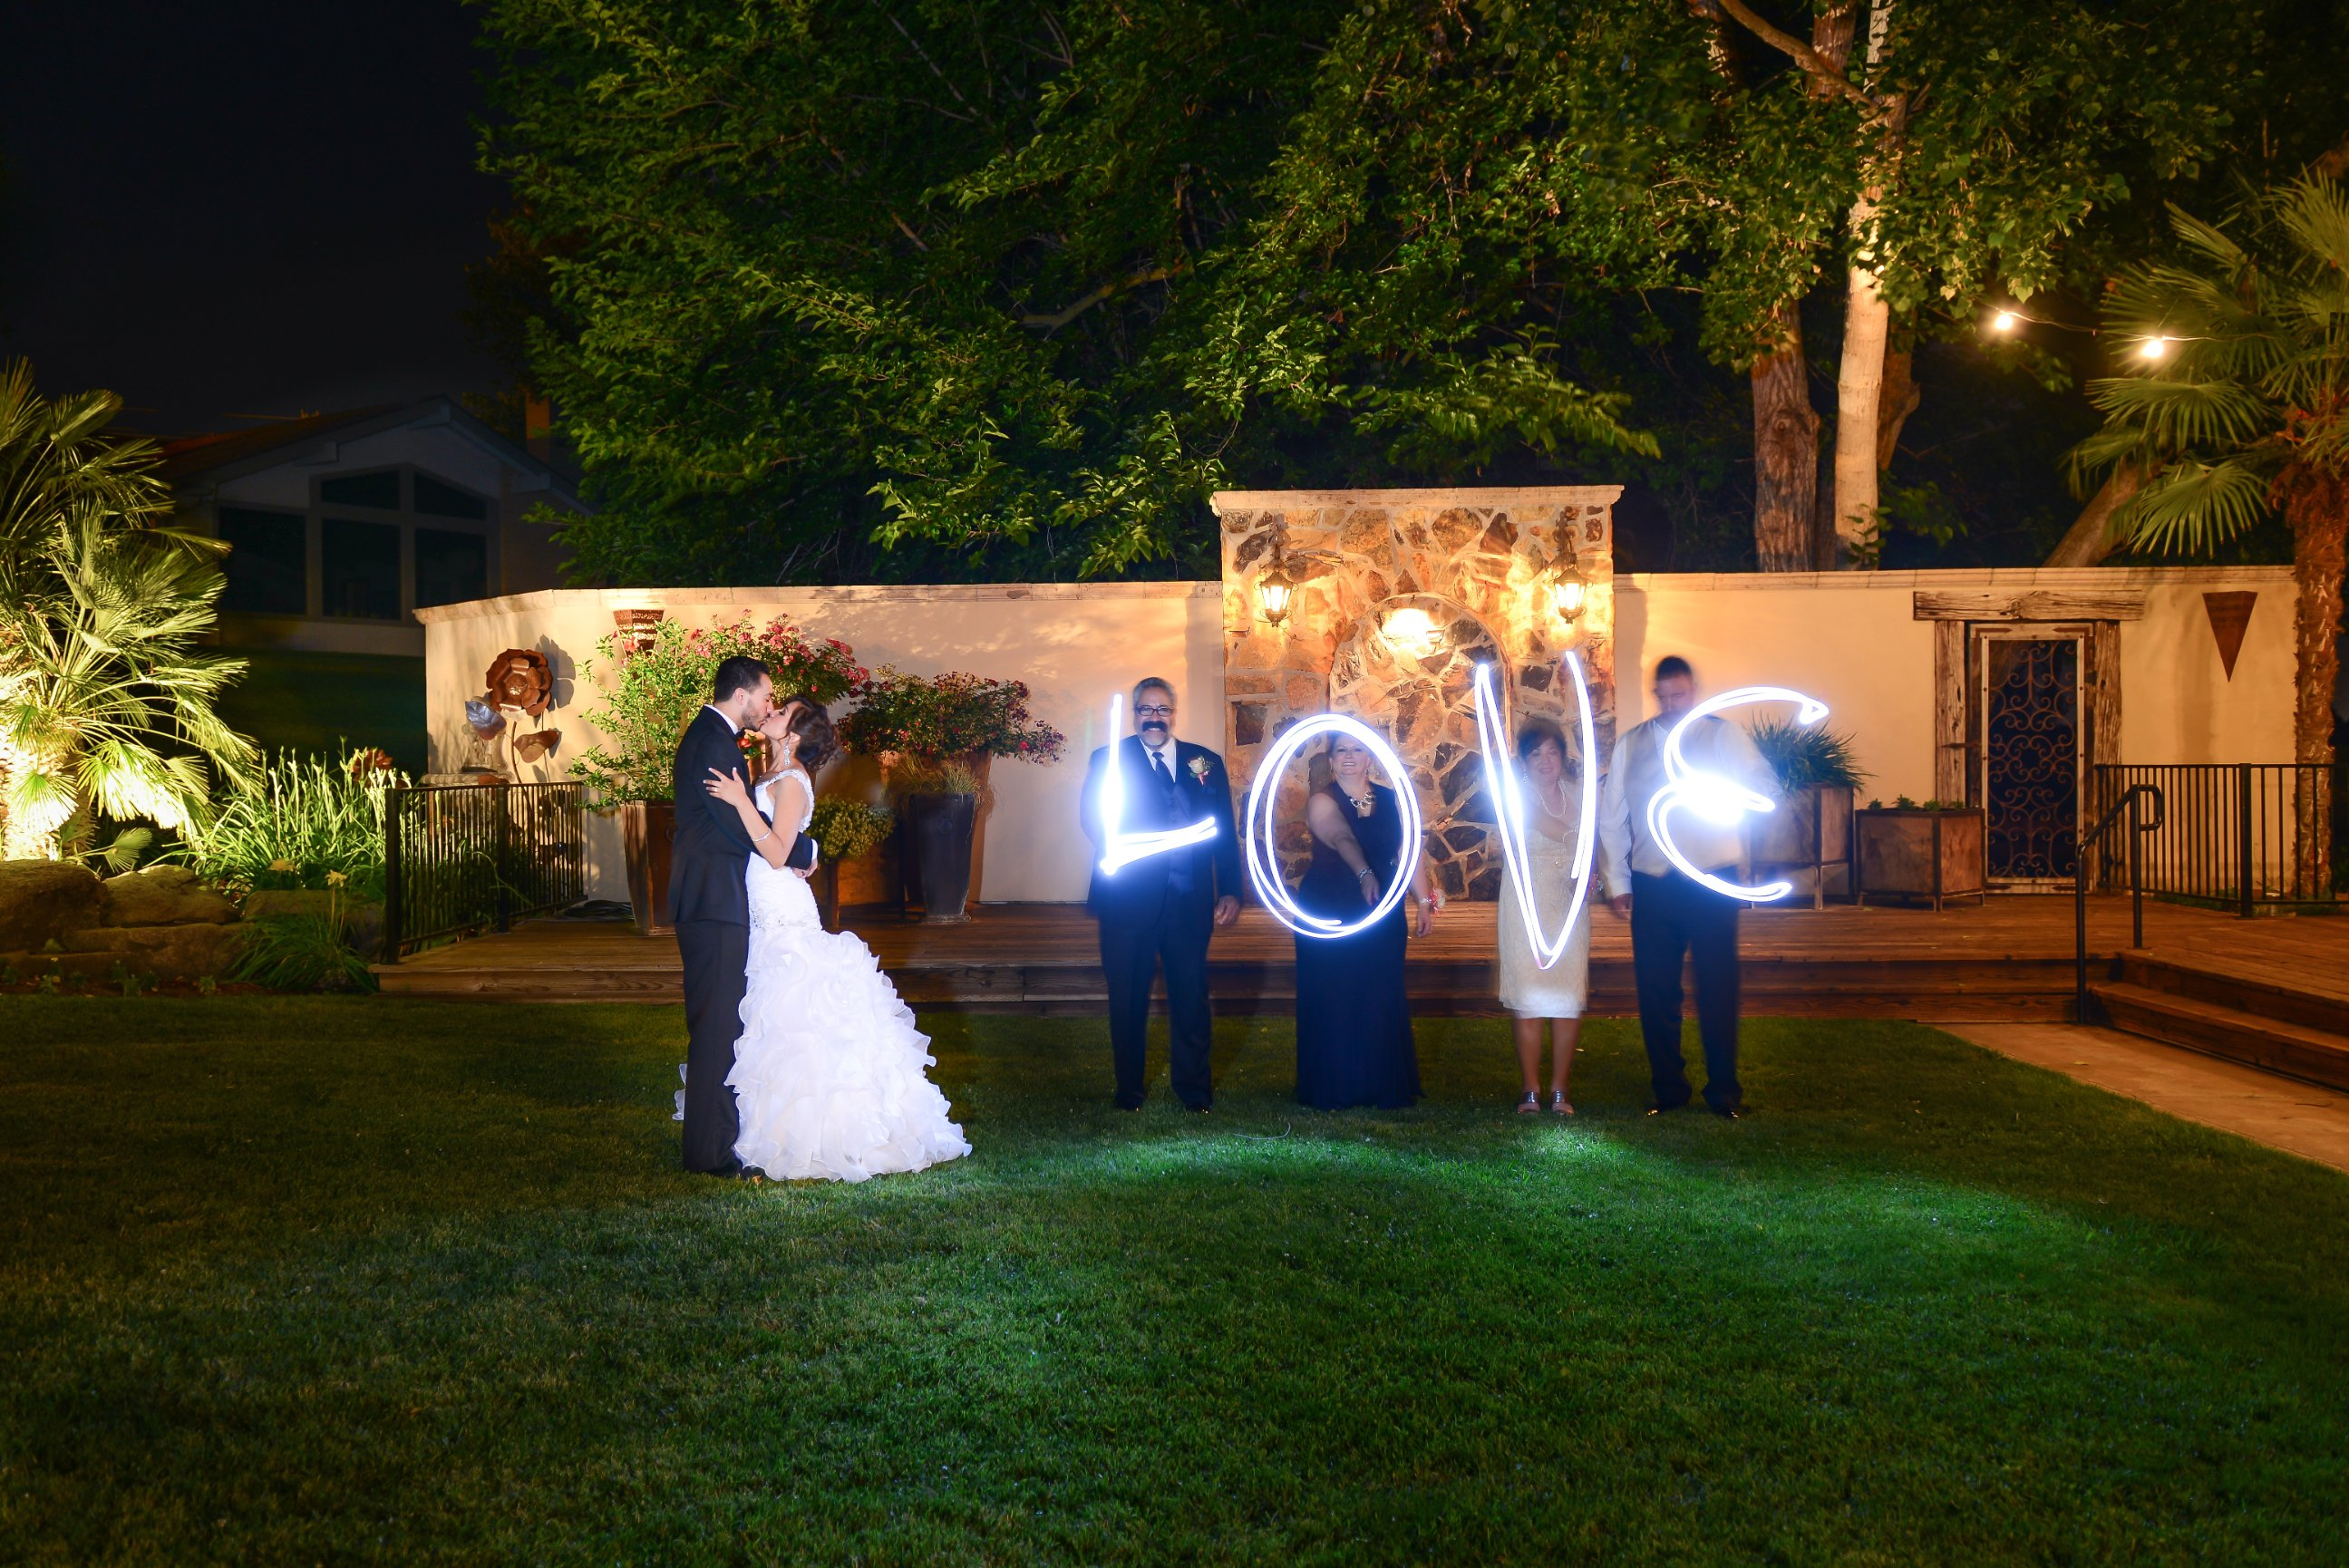 Wedding Venues In Fresno Ca | Wolf Lakes Park Home